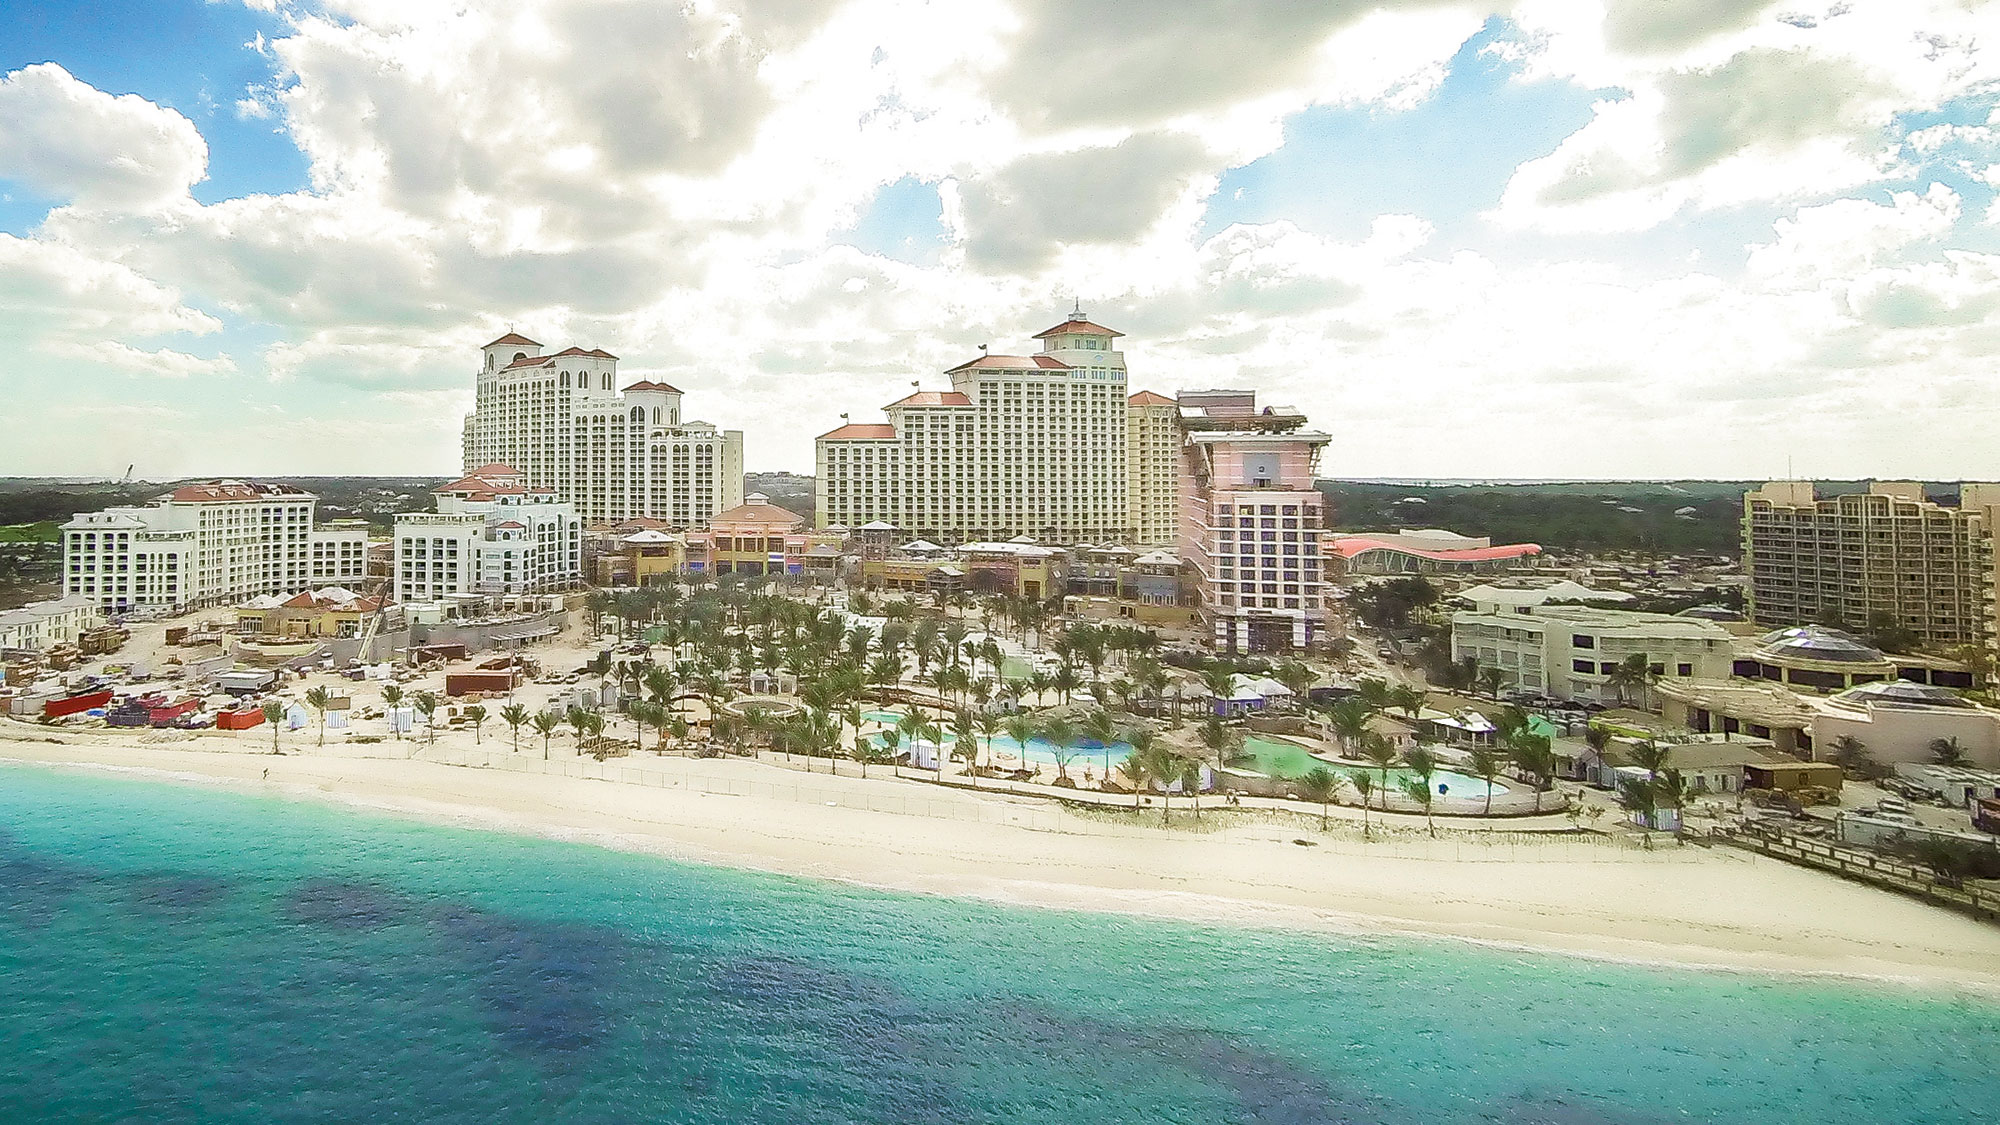 Construction on Baha Mar to resume Travel Weekly